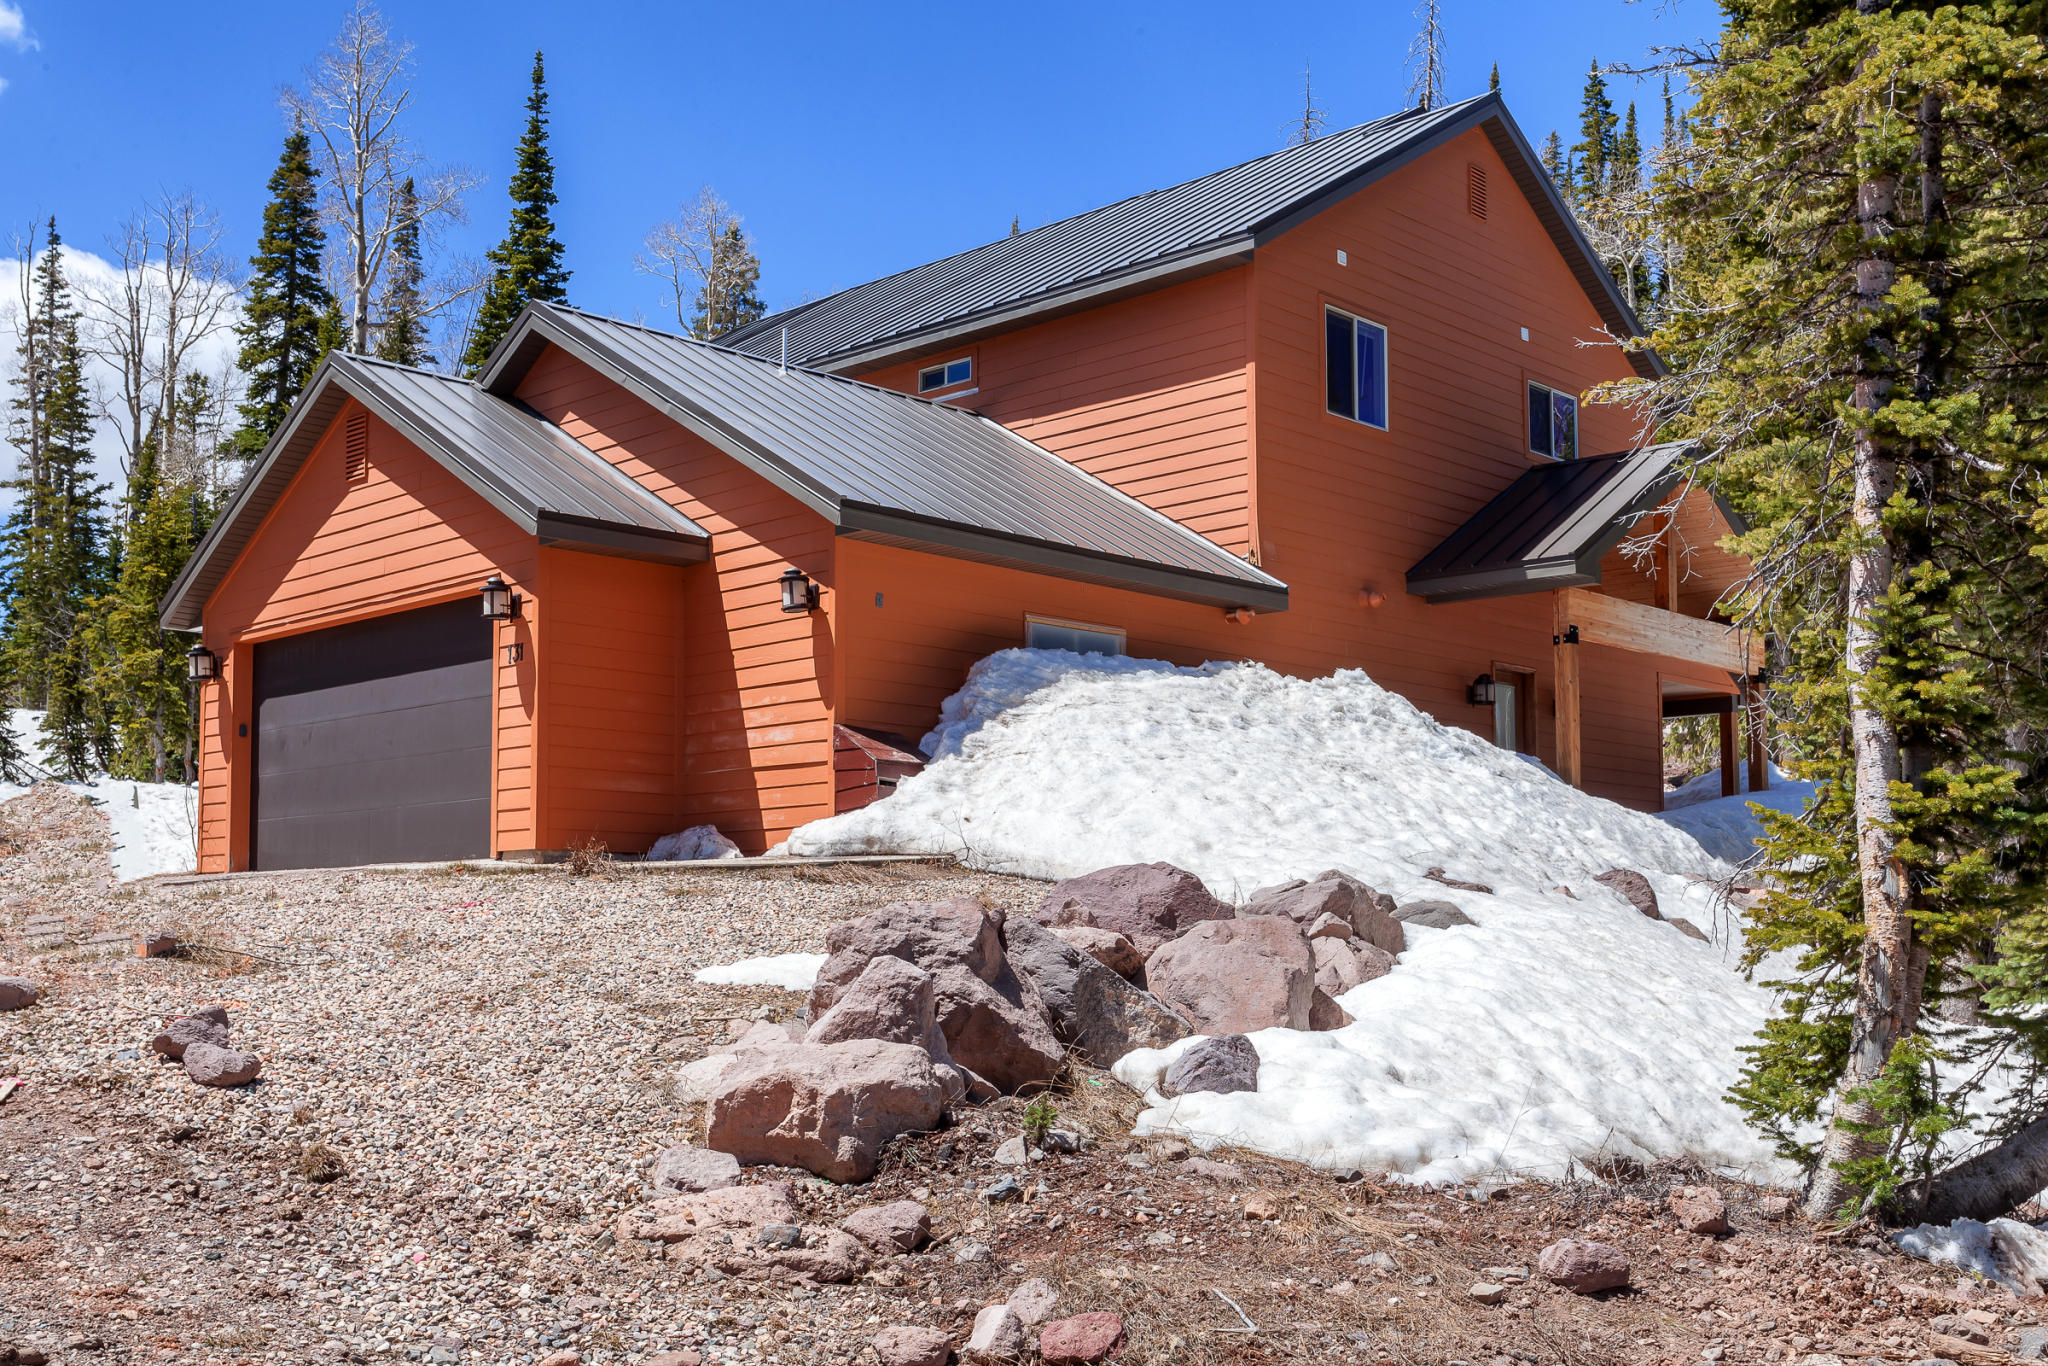 home head cabins cabin rental luxurious vacation homeaway brian rentals mountain